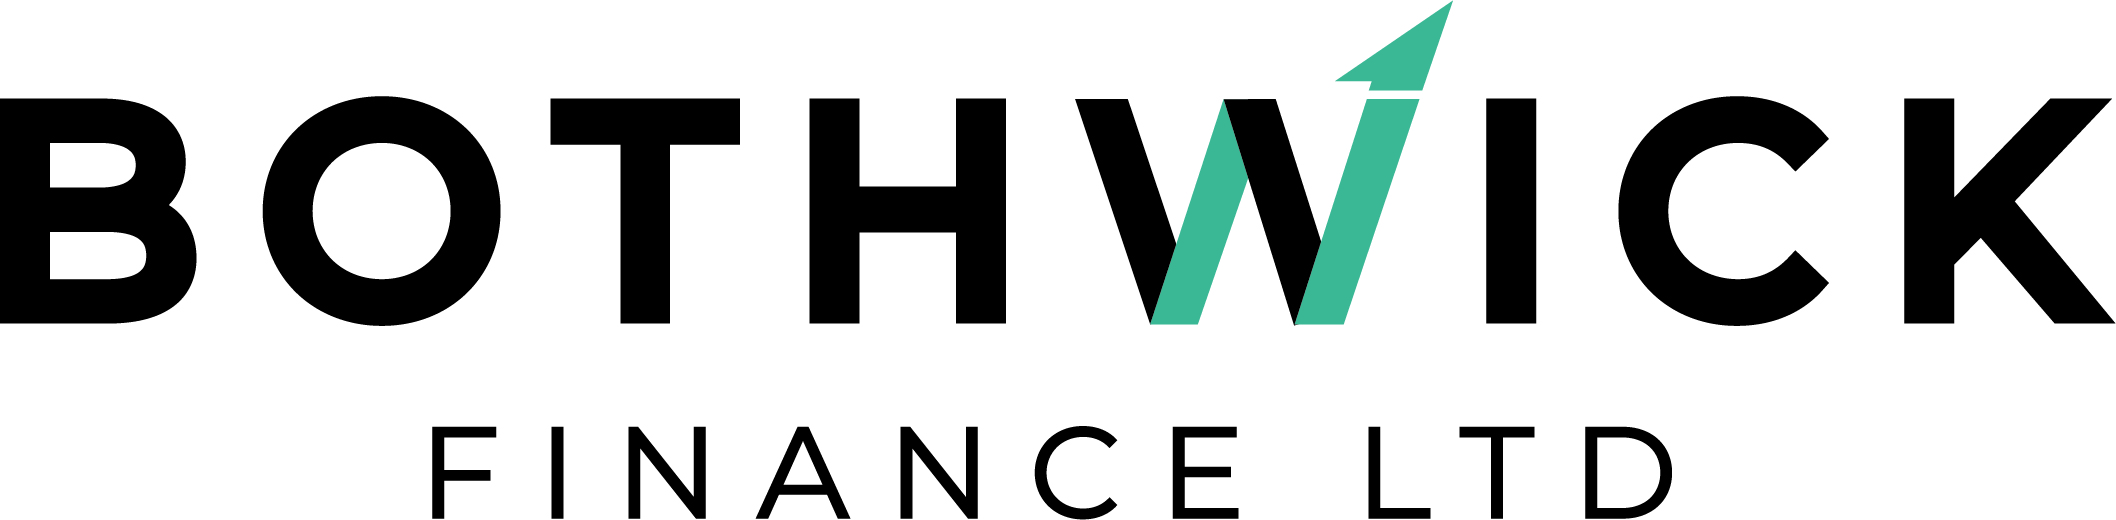 Bothwick Finance Ltd